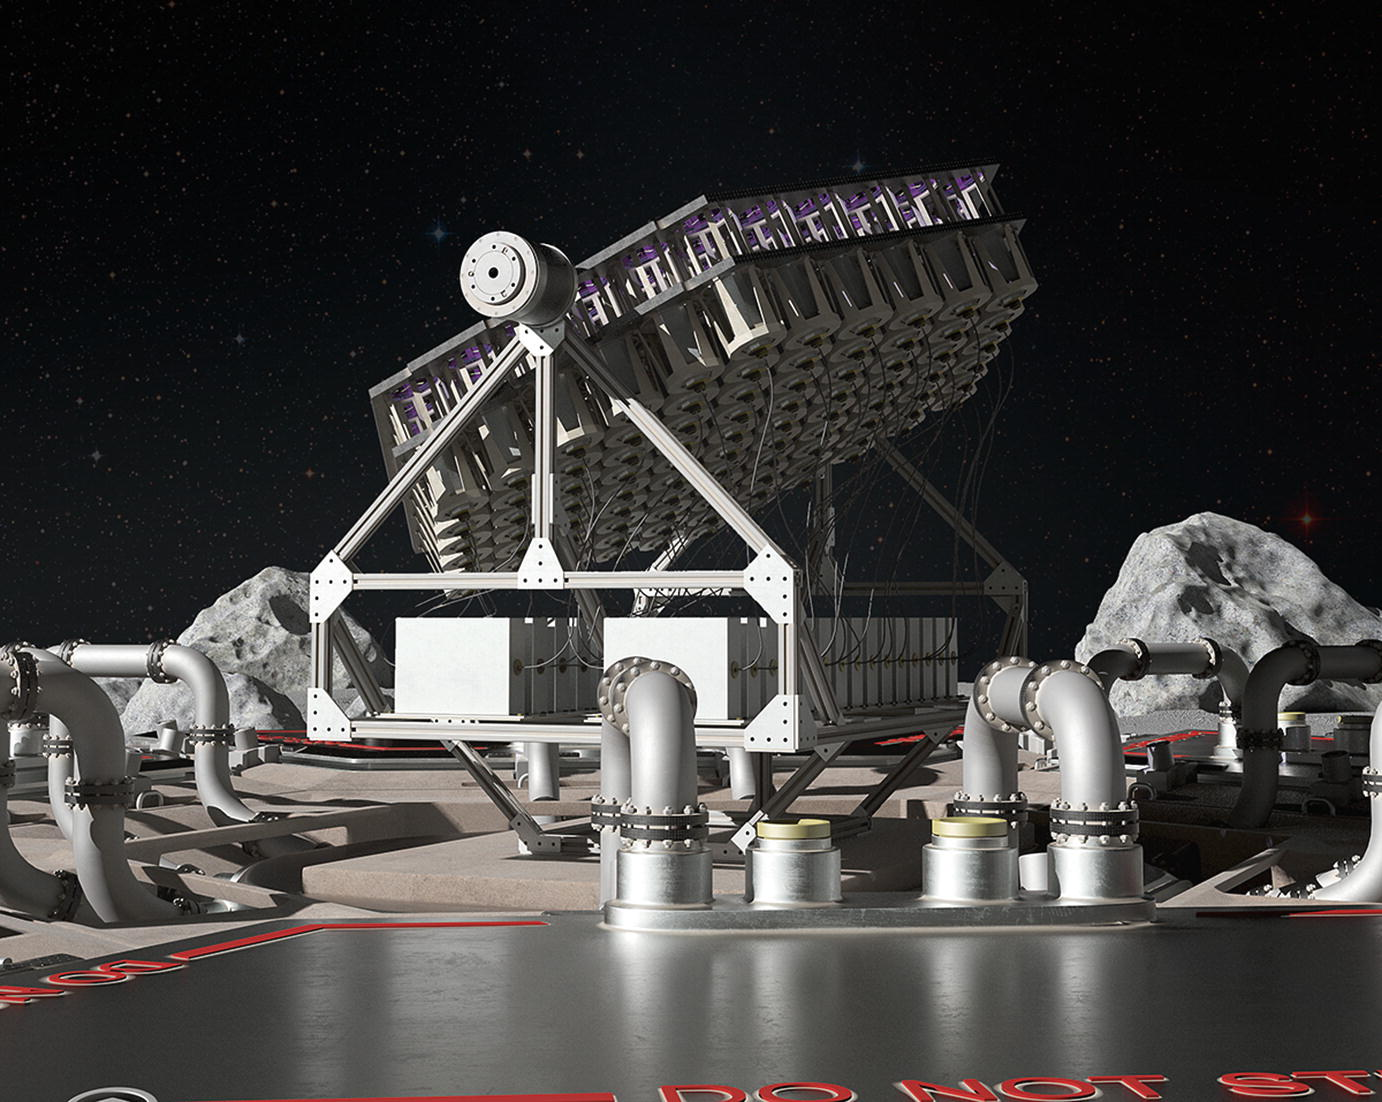 The Multipurpose Lunar Base as a First-Line Biosphere